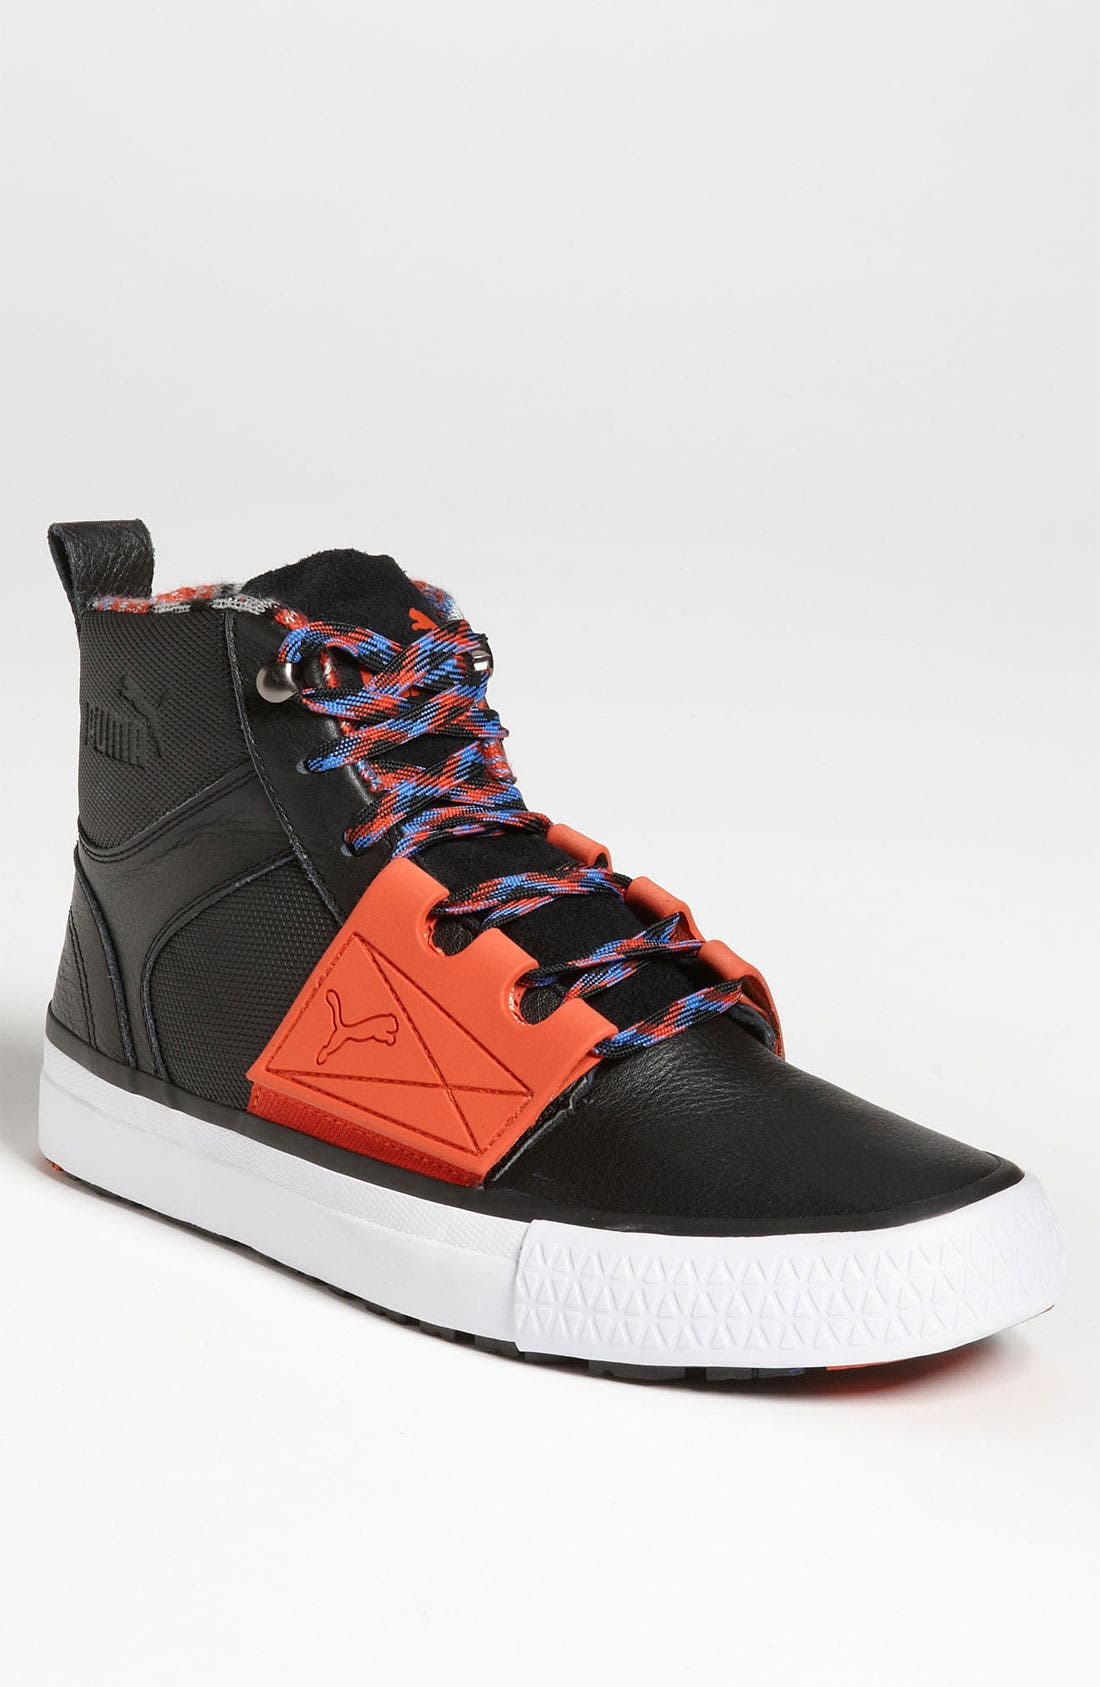 Alternate Image 1 Selected - PUMA 'El Ace' Sneaker (Men)